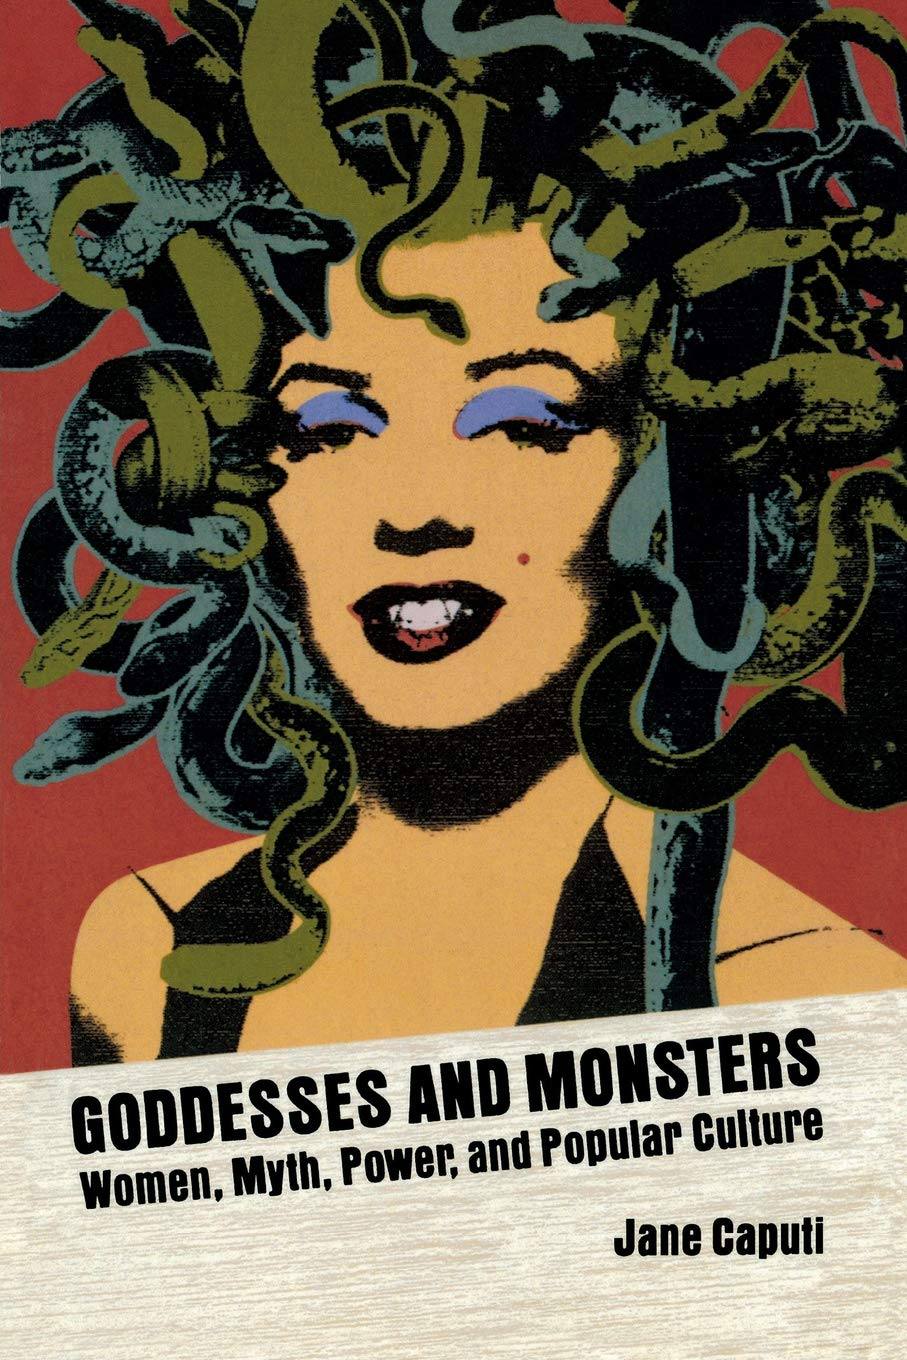 Goddesses and Monsters: Women, Myth, Power, and Popular Culture Ray and Pat Browne Books Paperback: Amazon.es: Jane Caputi: Libros en idiomas extranjeros